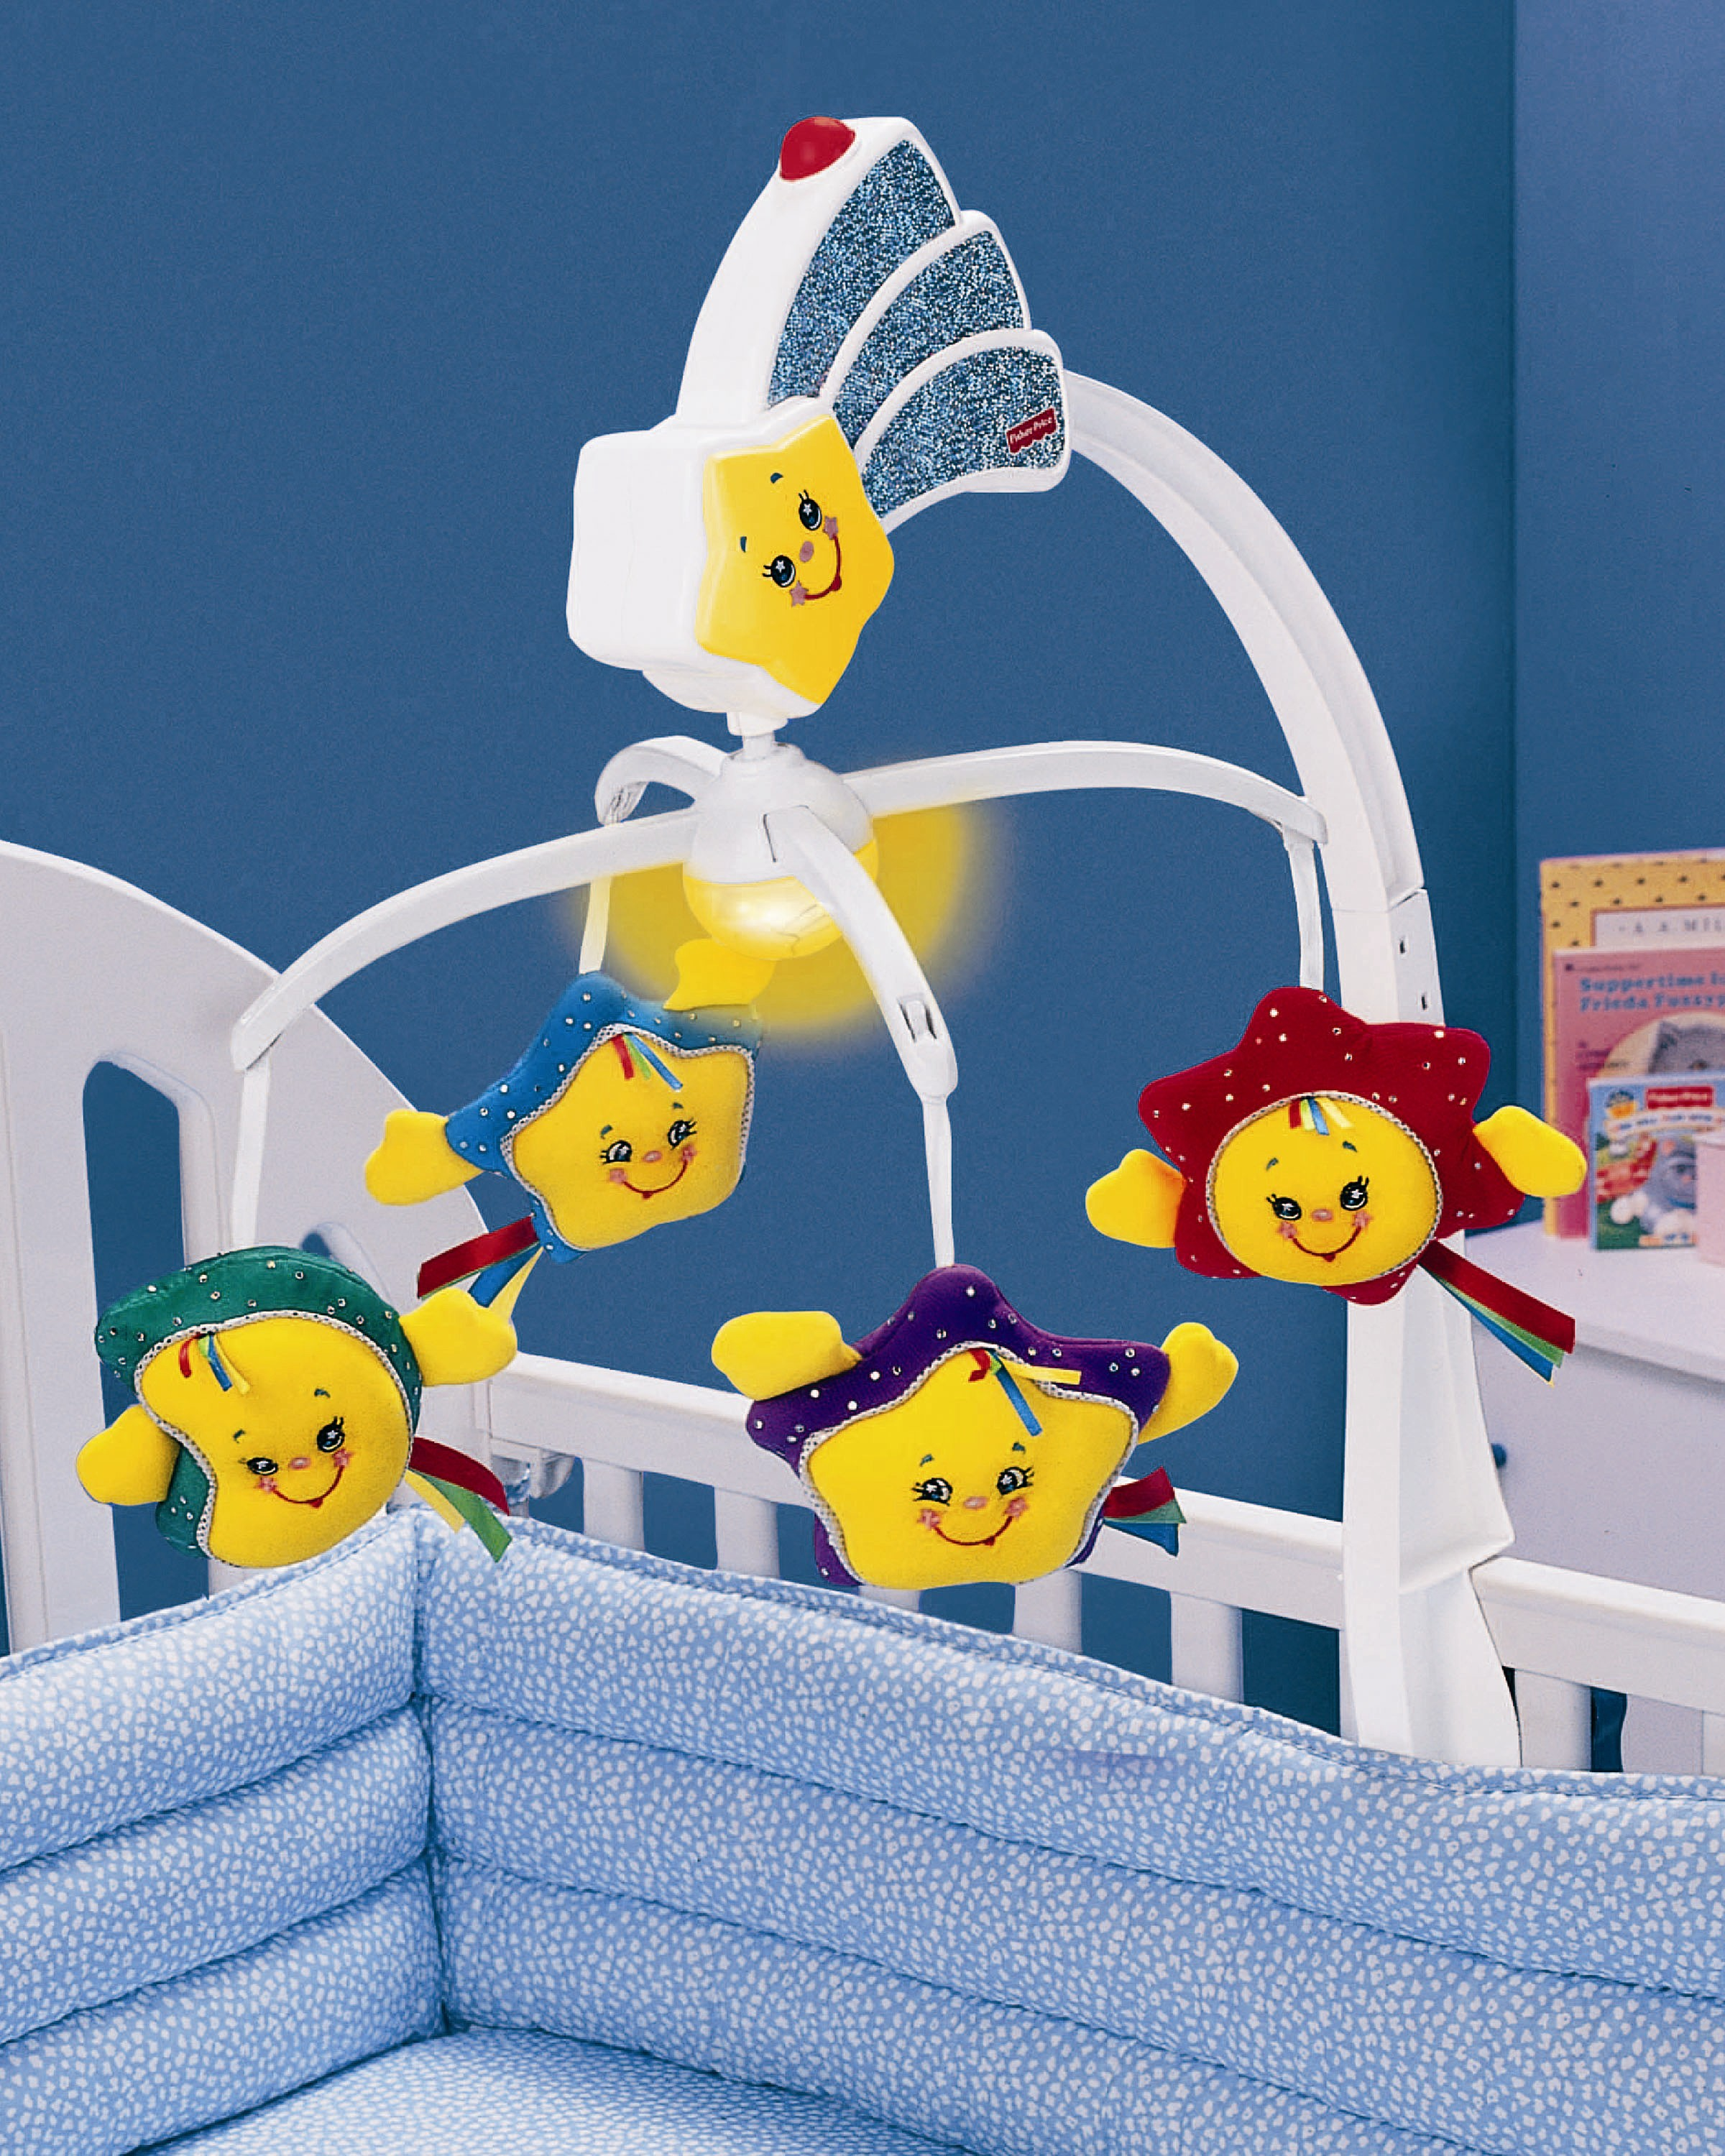 Fisher Price Crib Toys : Crib mobile toys recalled by fisher price